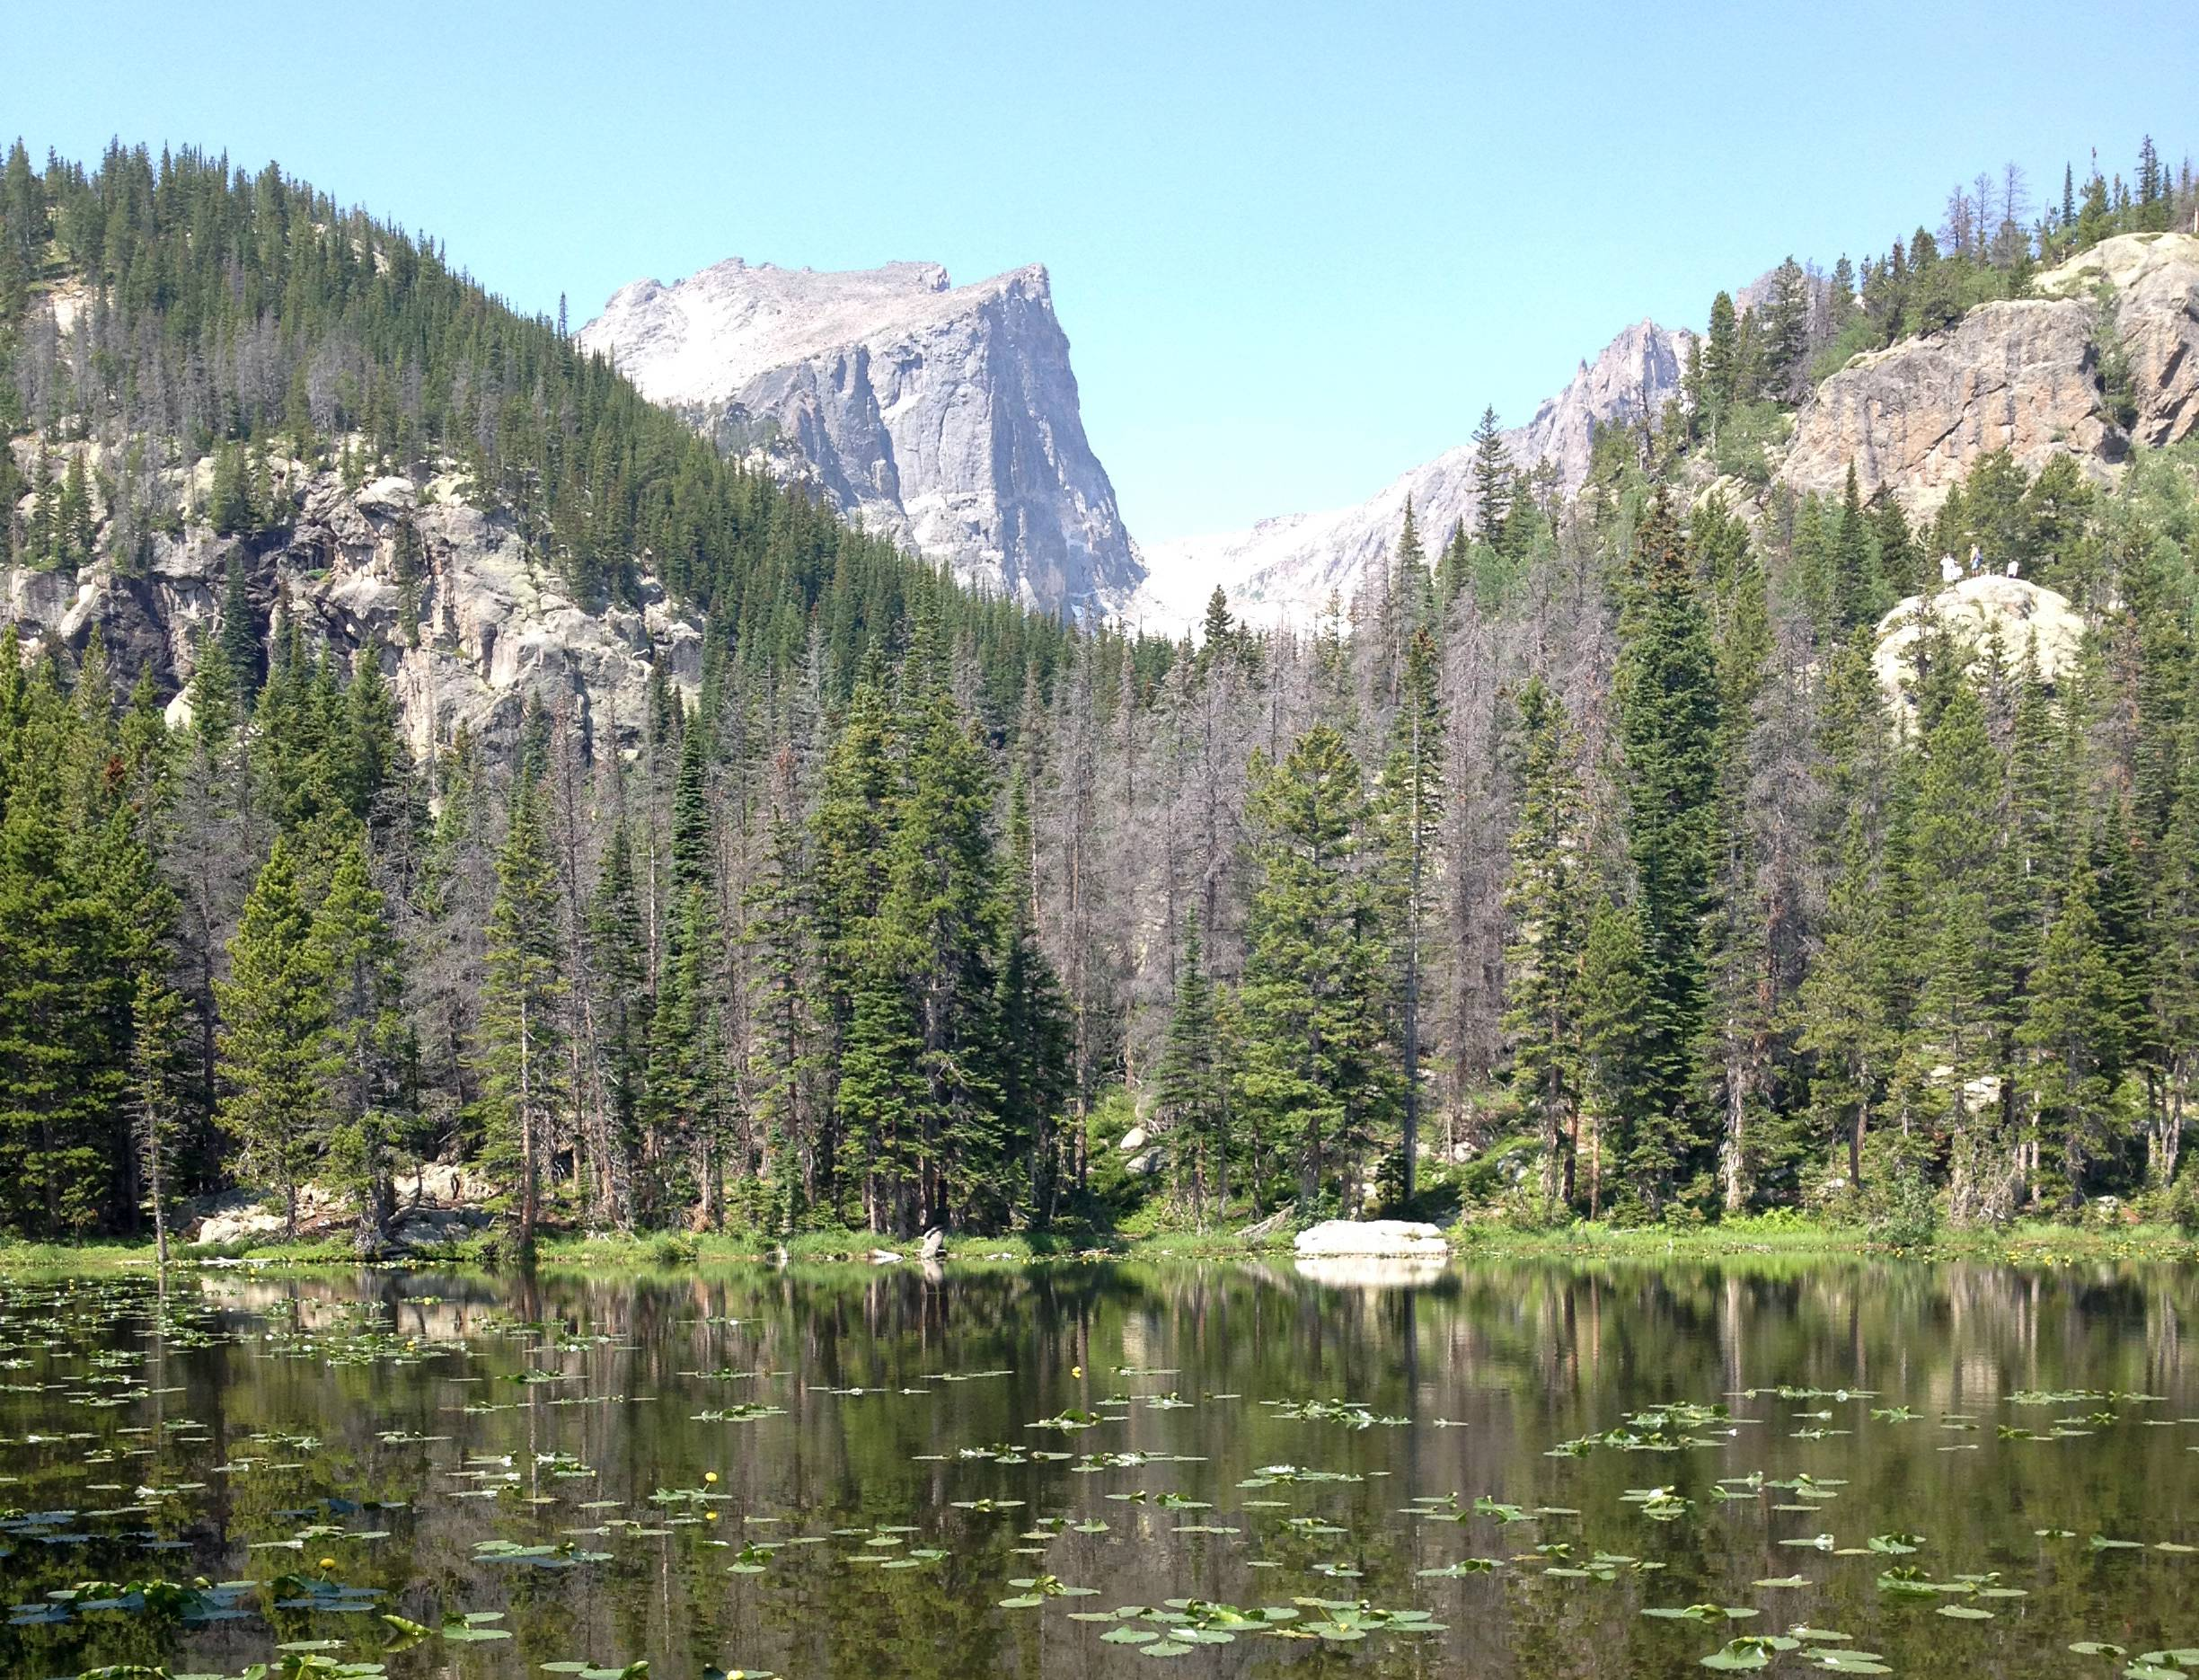 Fall is a nice time to visit the Bear Lake Corridor Trails area in Rocky Mountain National Park.